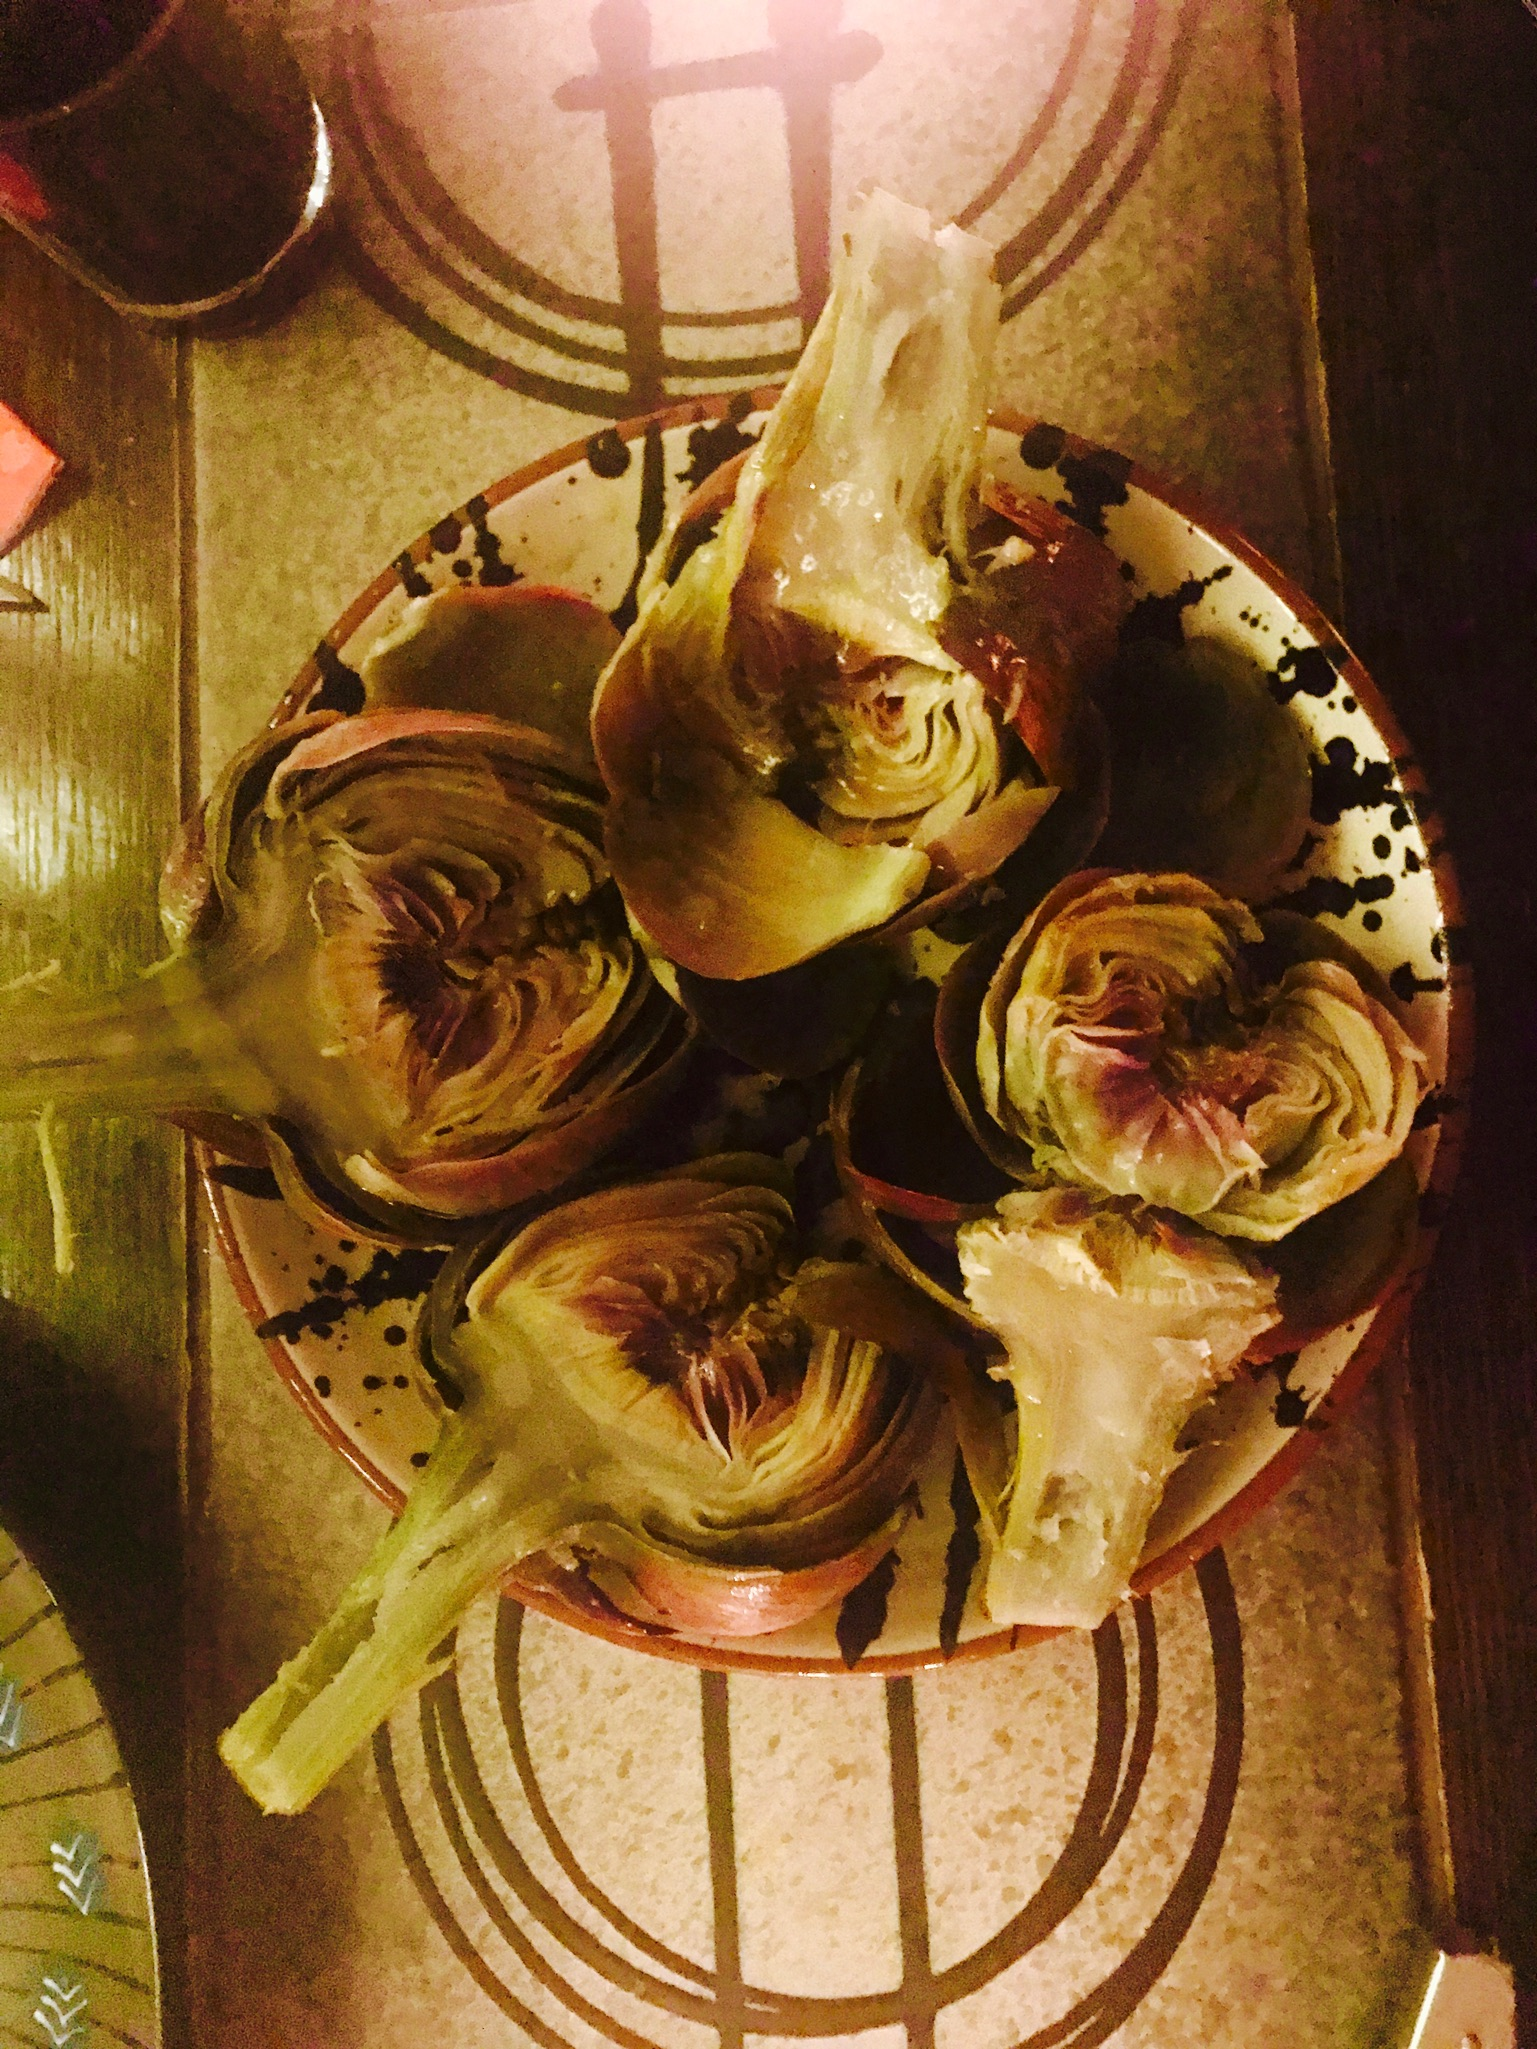 Artichokes with lemon butter